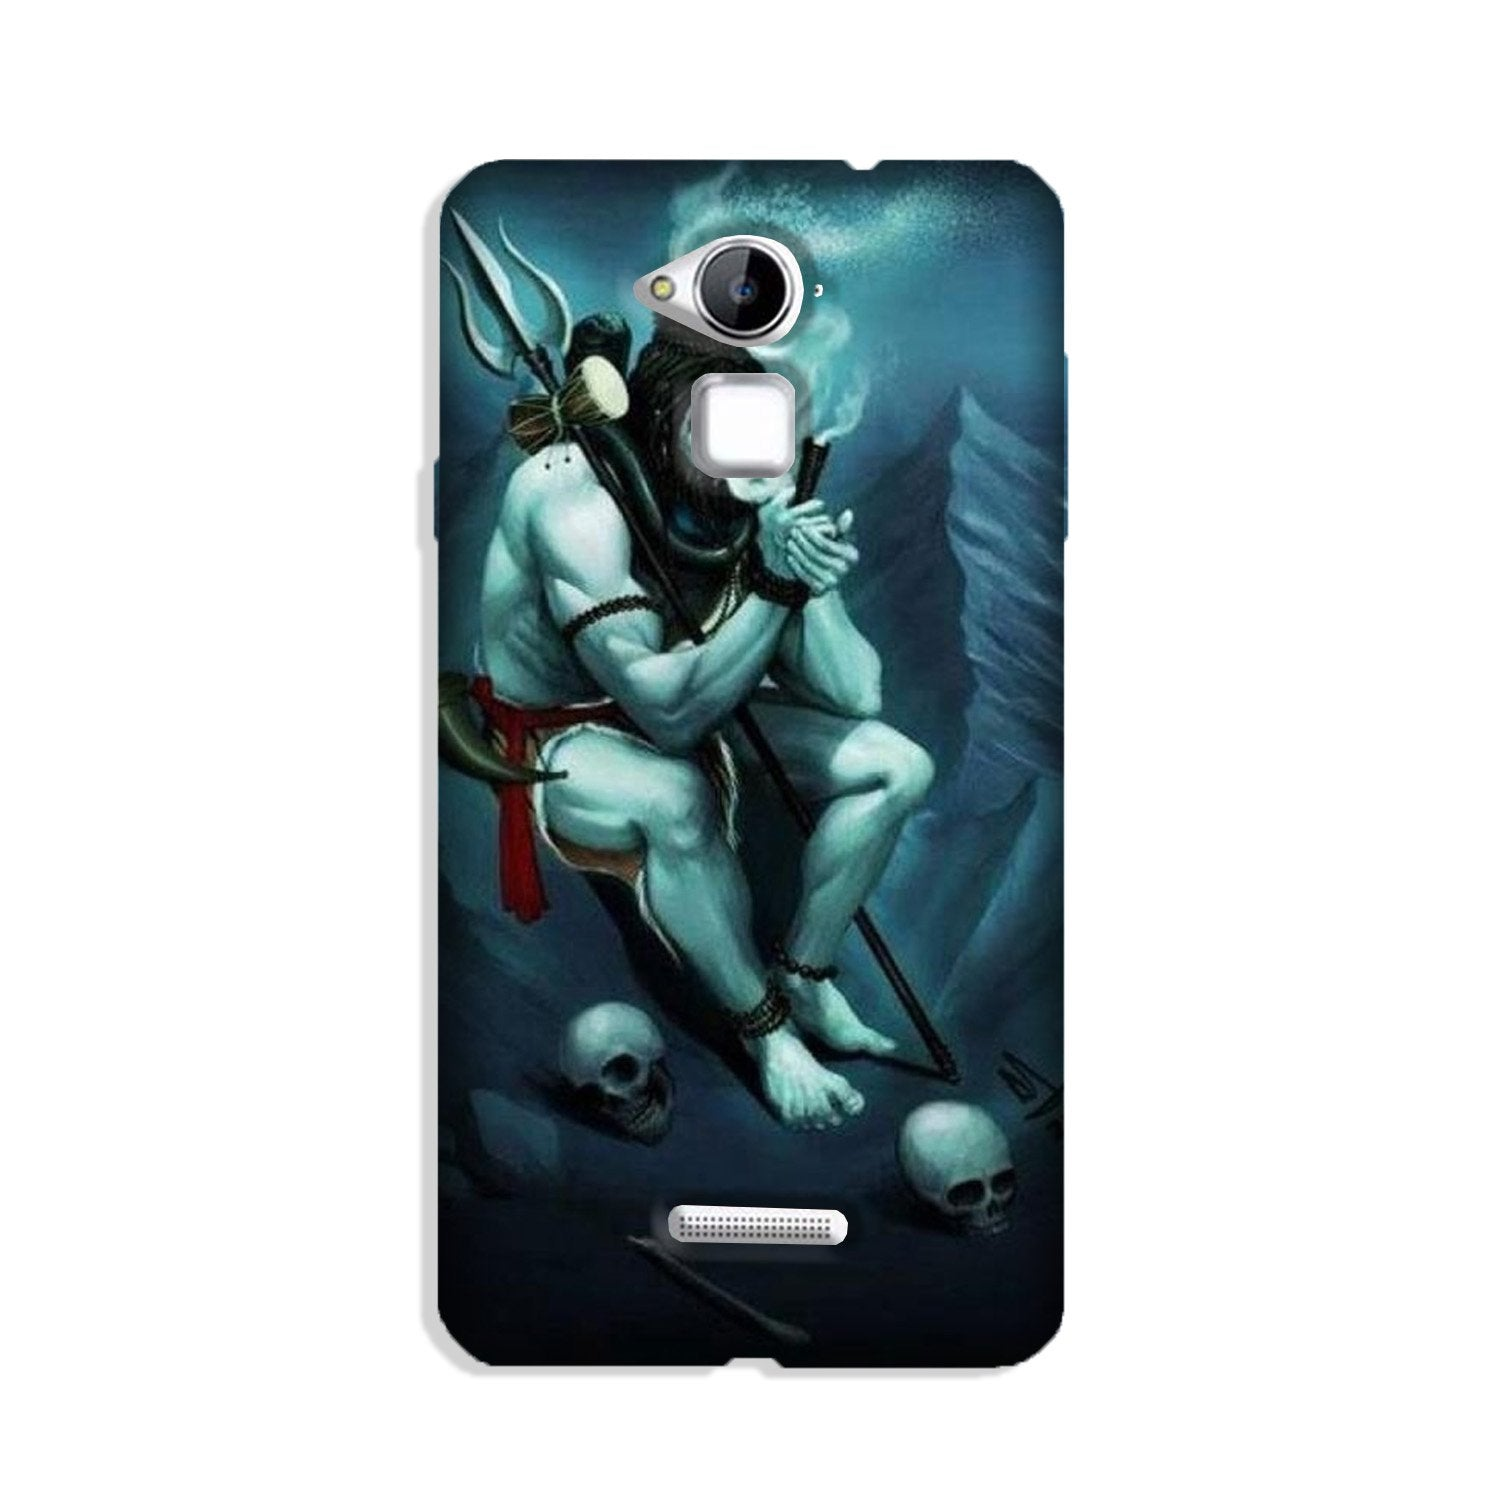 Lord Shiva Mahakal  Case for Coolpad Note 3